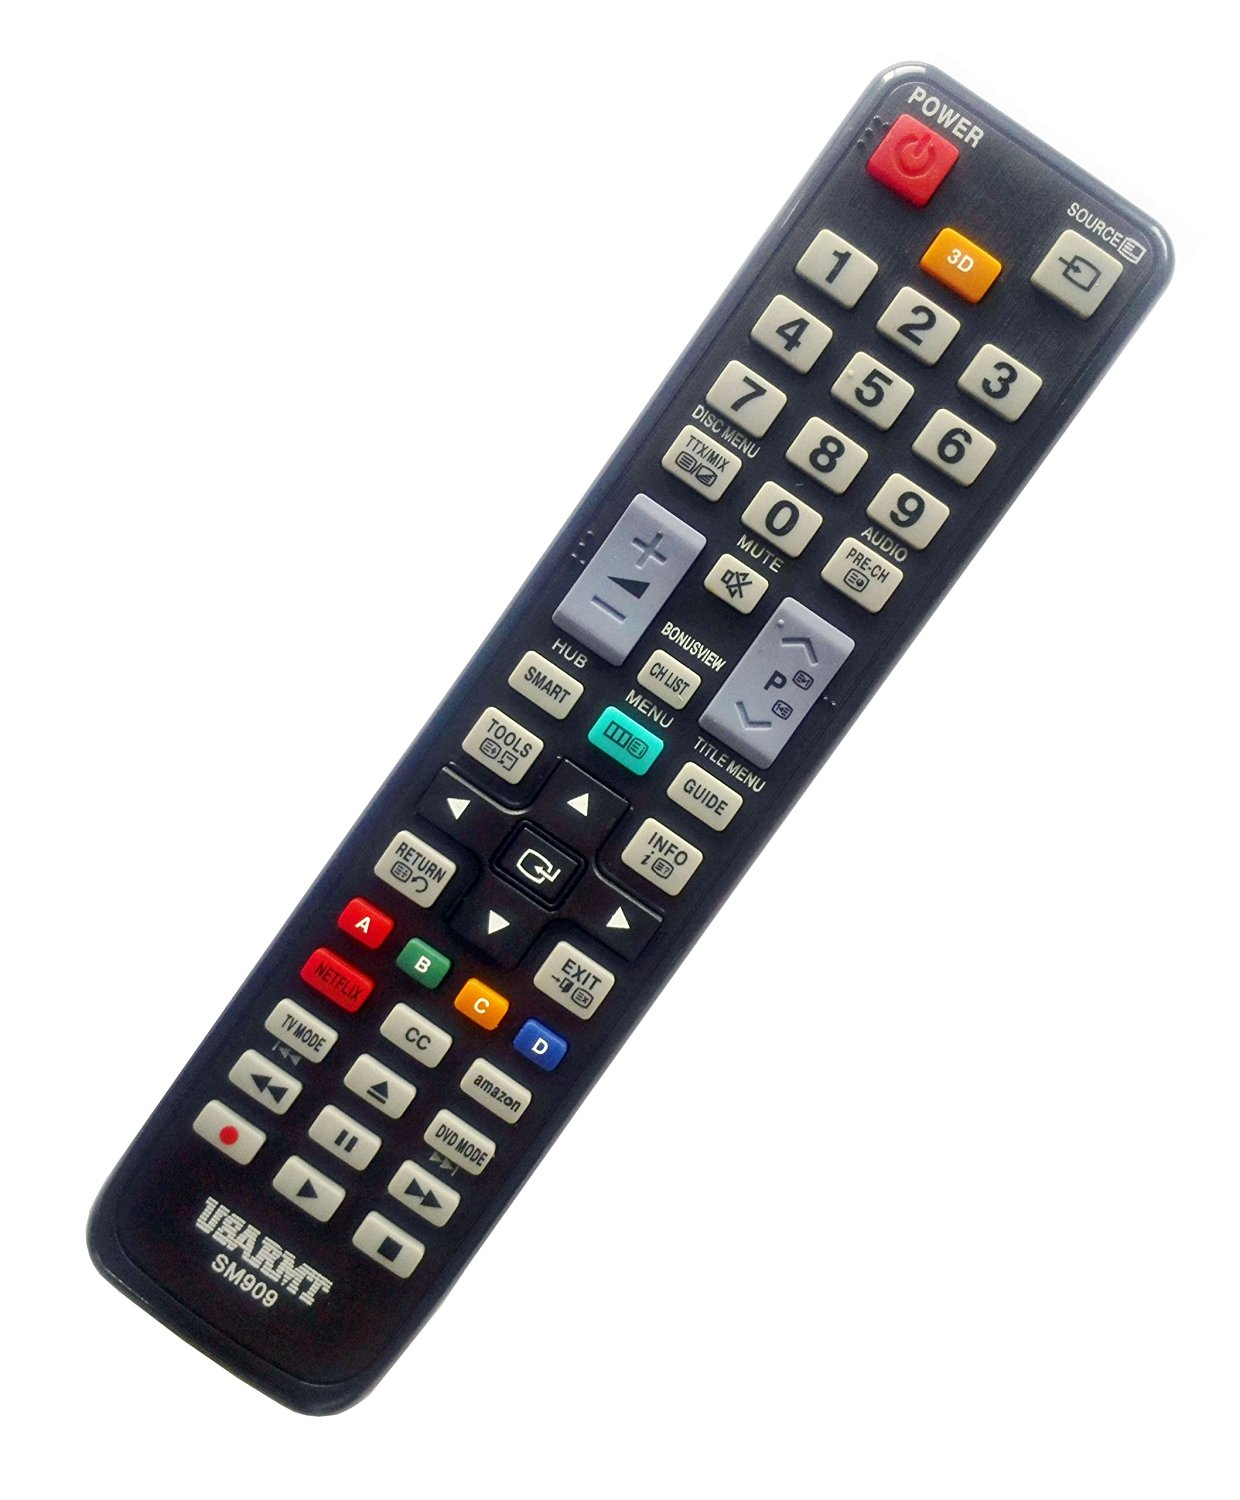 NEW Samsung Universal TV&DVD Blu-ray Player Remote Fit for 99% Samsung Plasma LCD LED 3D TV & DVD Blu-ray Player, replace AA59-00580A AA59-00637A BN59-01041A BN59-00996A BN59-00857A AK59-00104R.